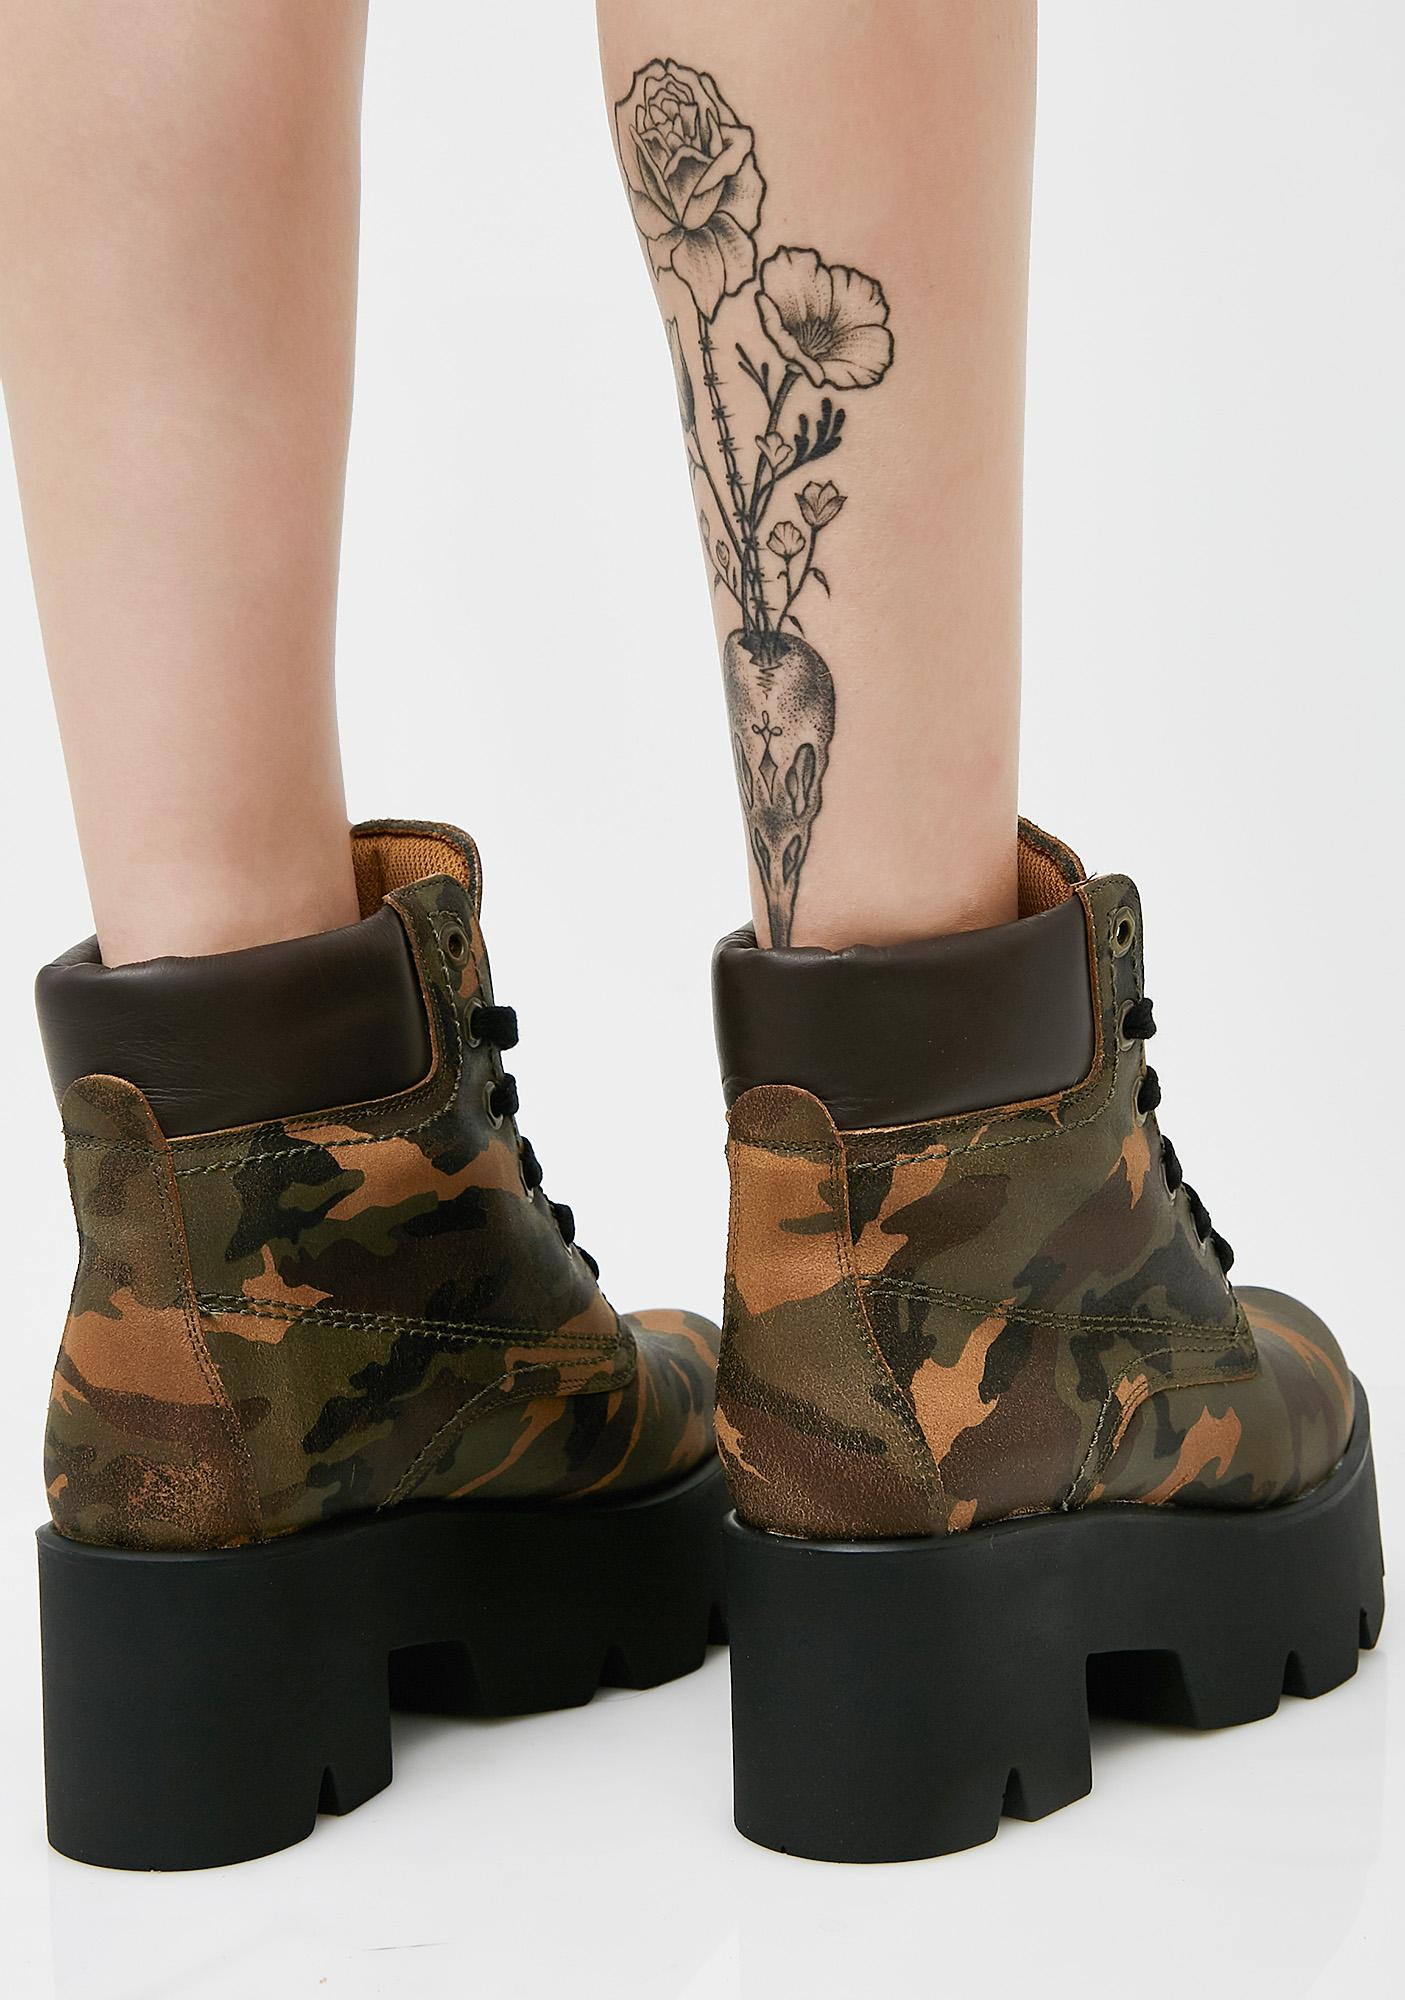 Shellys London Terrence Platform Boots